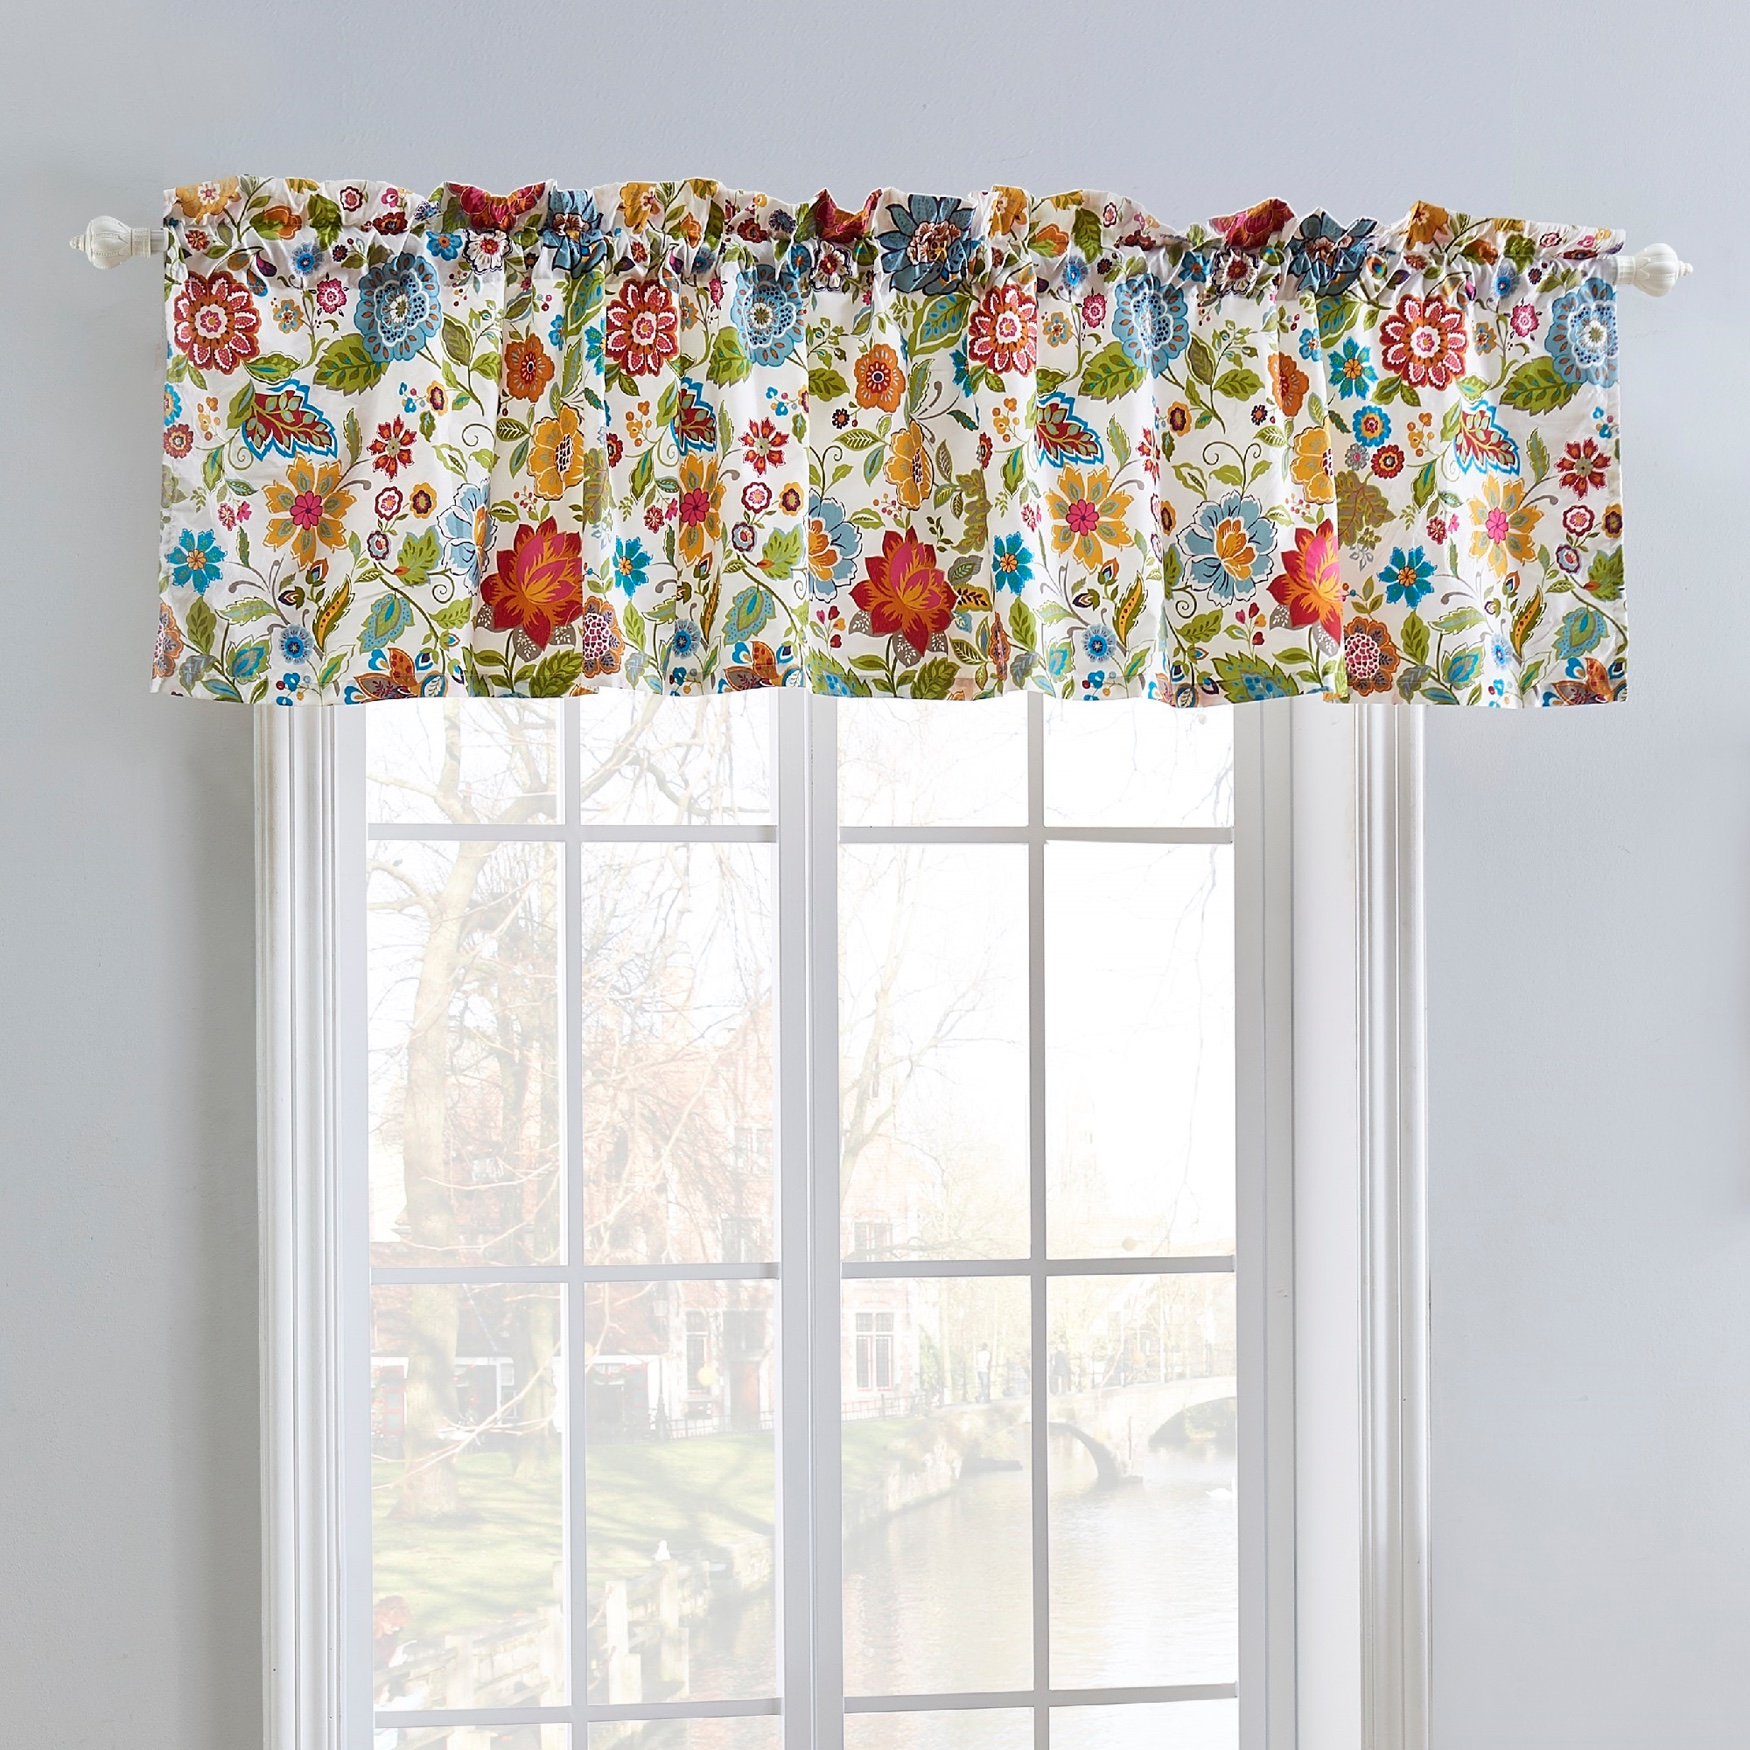 Astoria Spice Window Valance by Greenland Home Fashions,